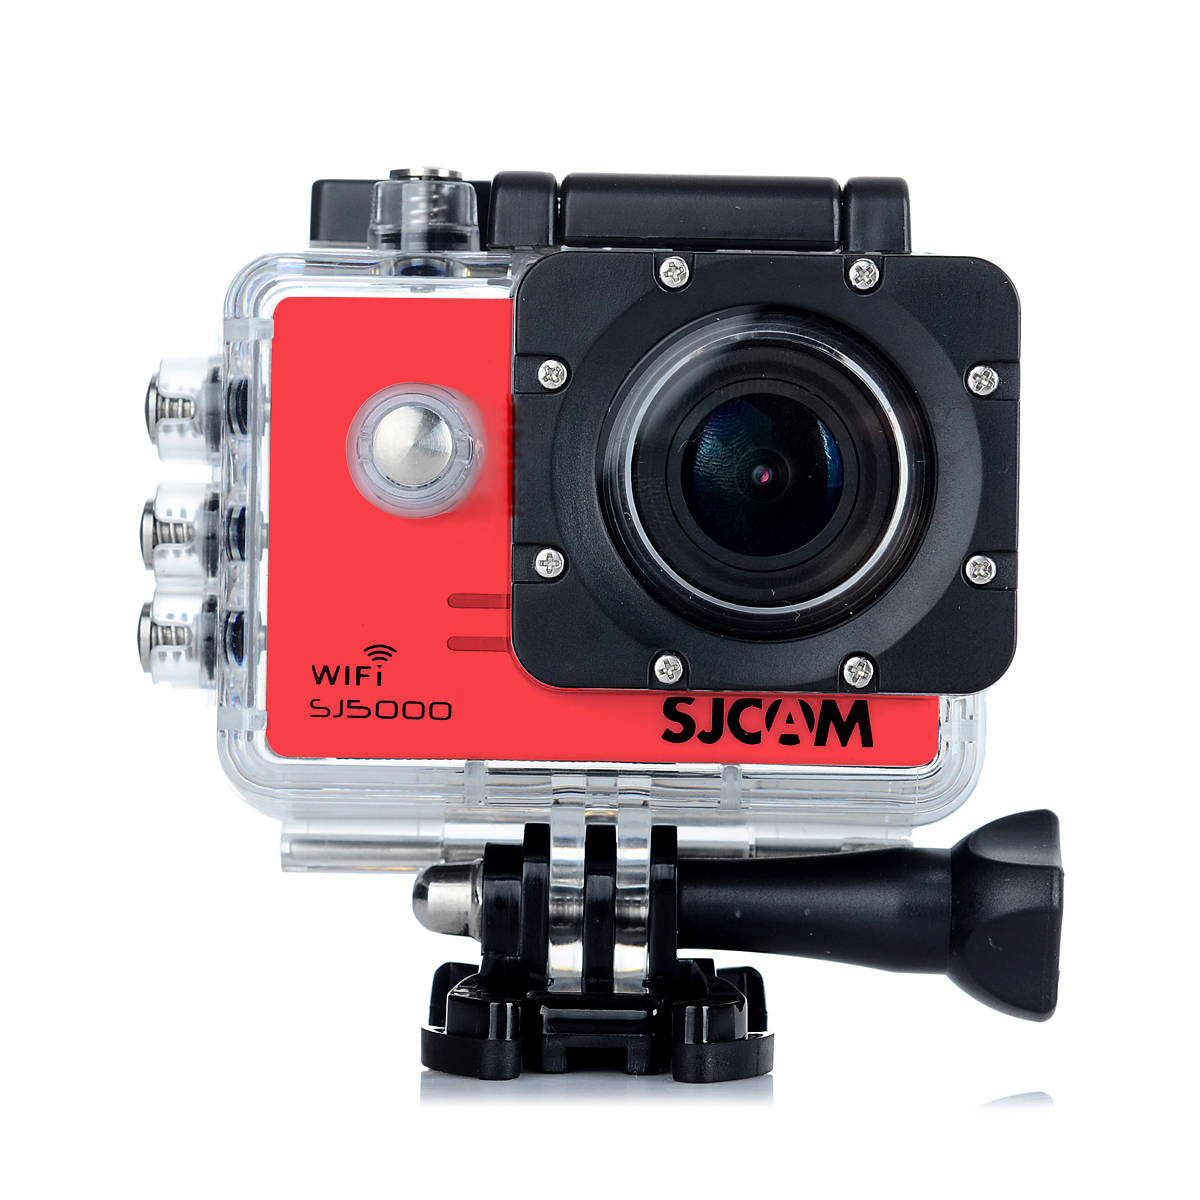 Original SJCAM SJ5000 WiFi Action HD Camera 14MP Novatek 96655 1080P Waterproof Red